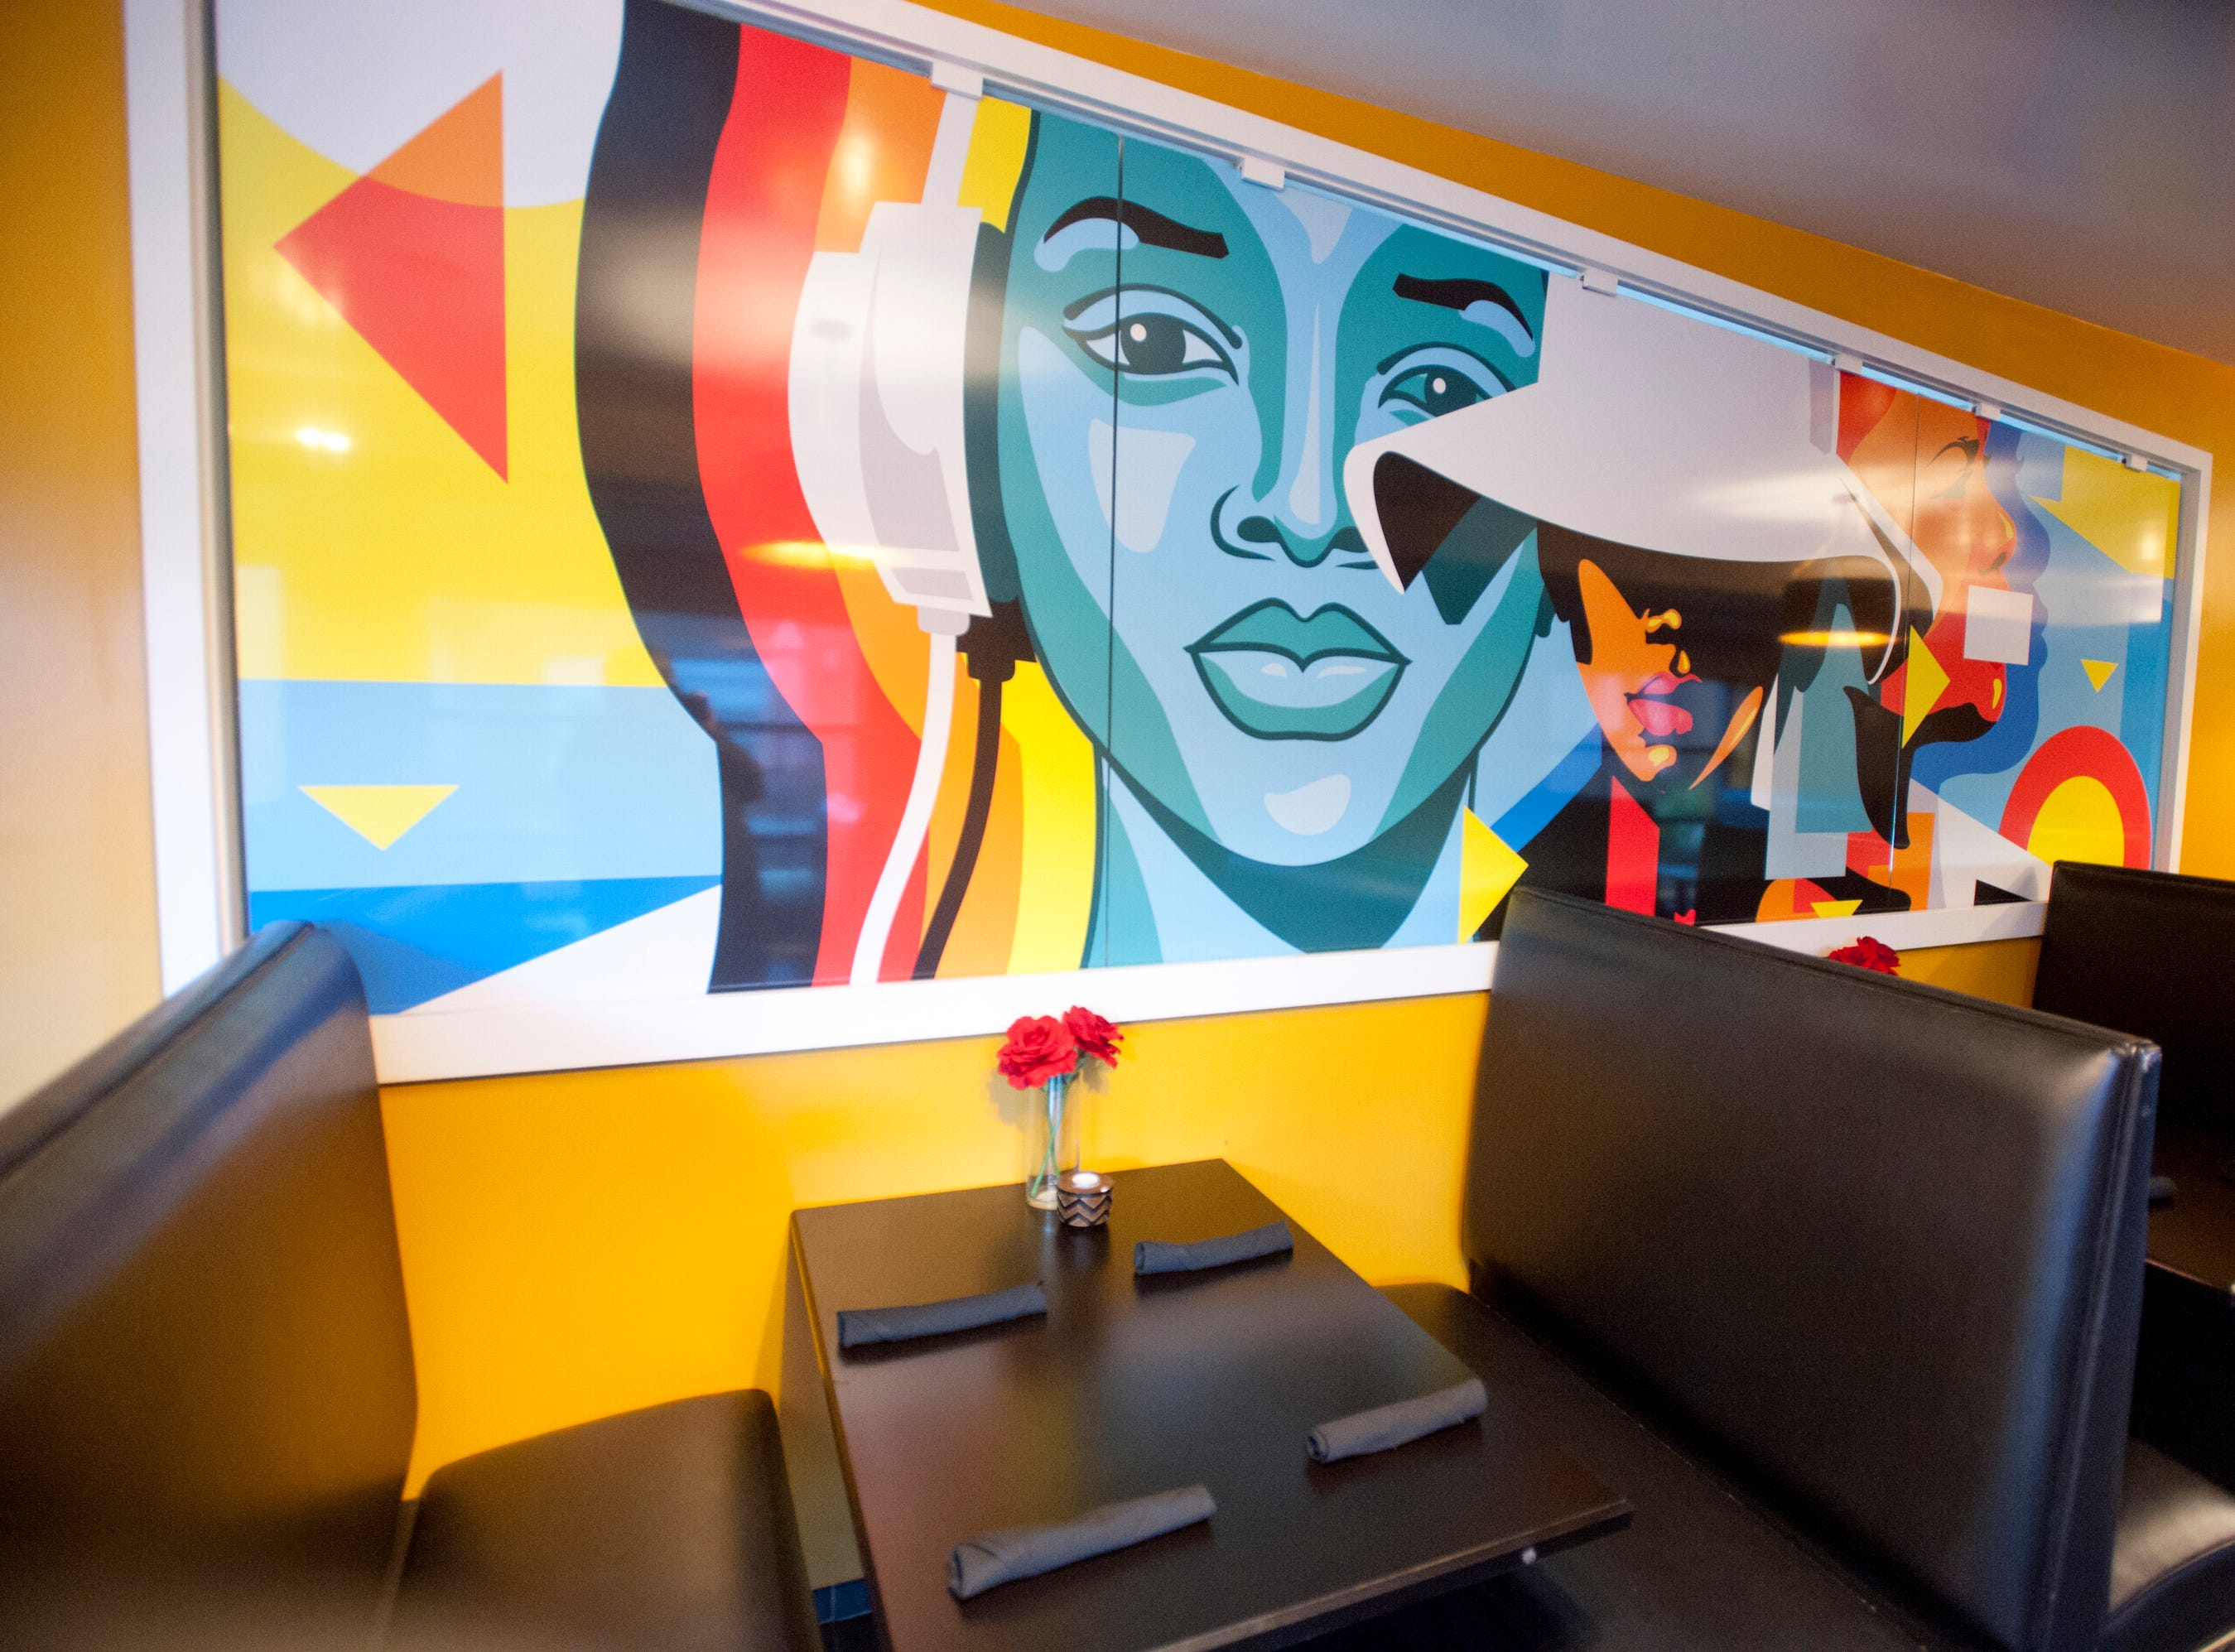 One of the dining rooms in the Flavour Restaurant and Lounge on Bardstown Road.November 08, 2018